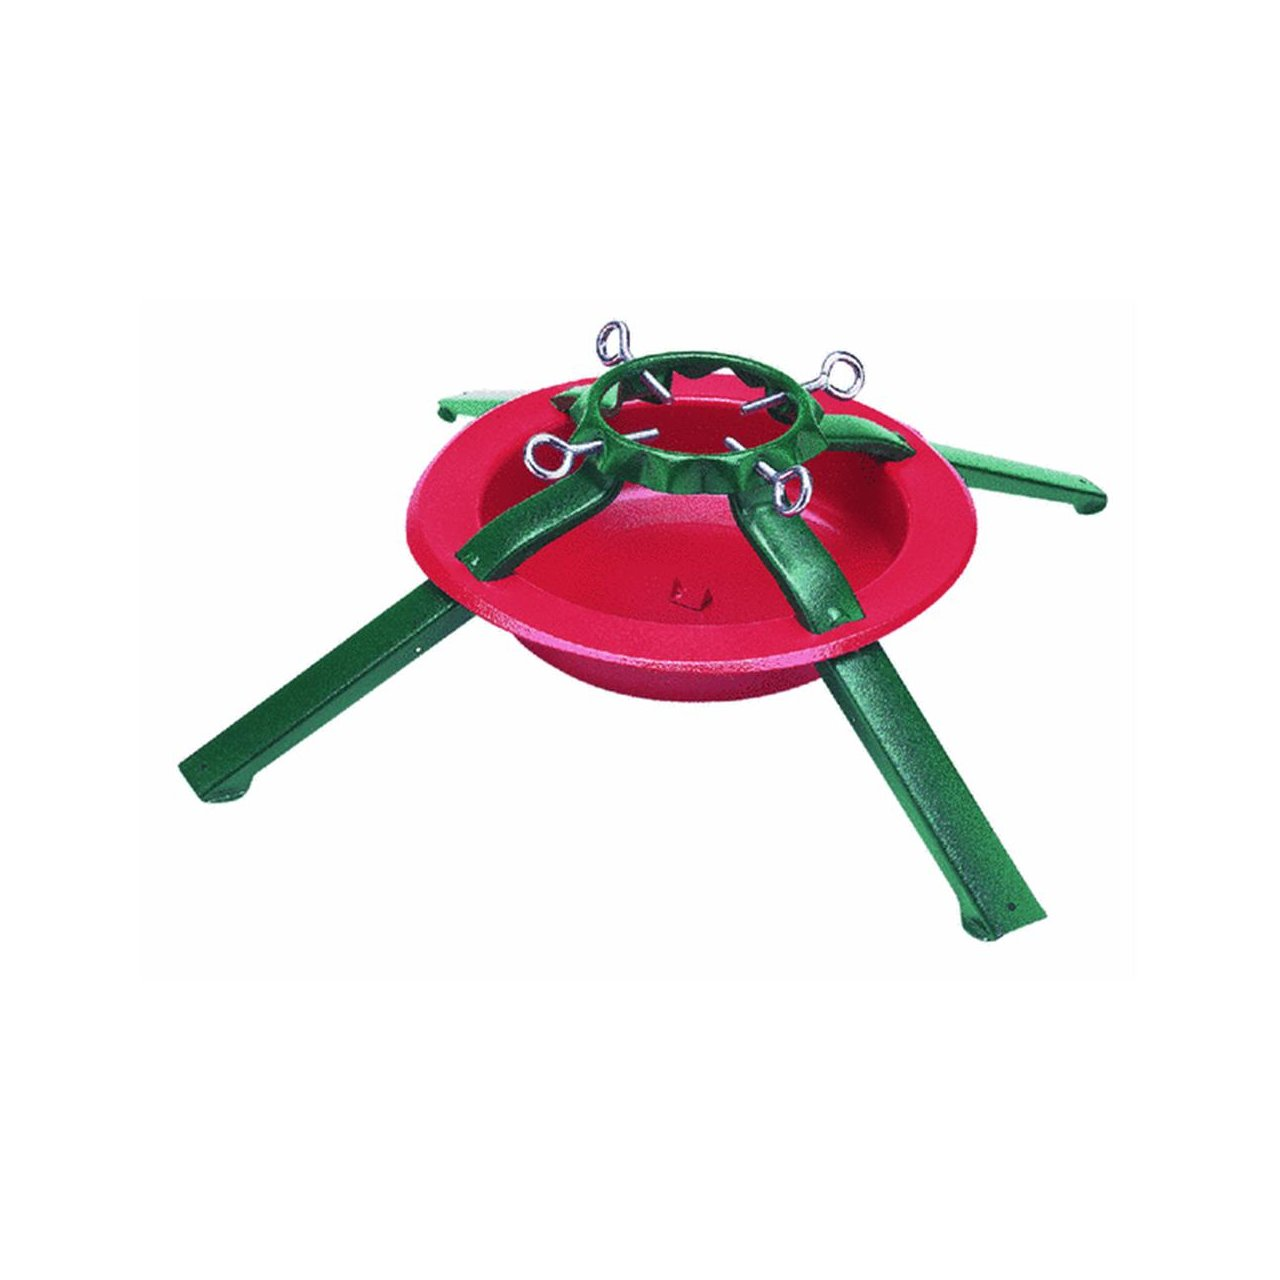 Jack Post National Holiday Traditions Red and Green Metal Tree Stand - Trees Up To 8 Feet Tall Jack Post/Christmas 5180-LC